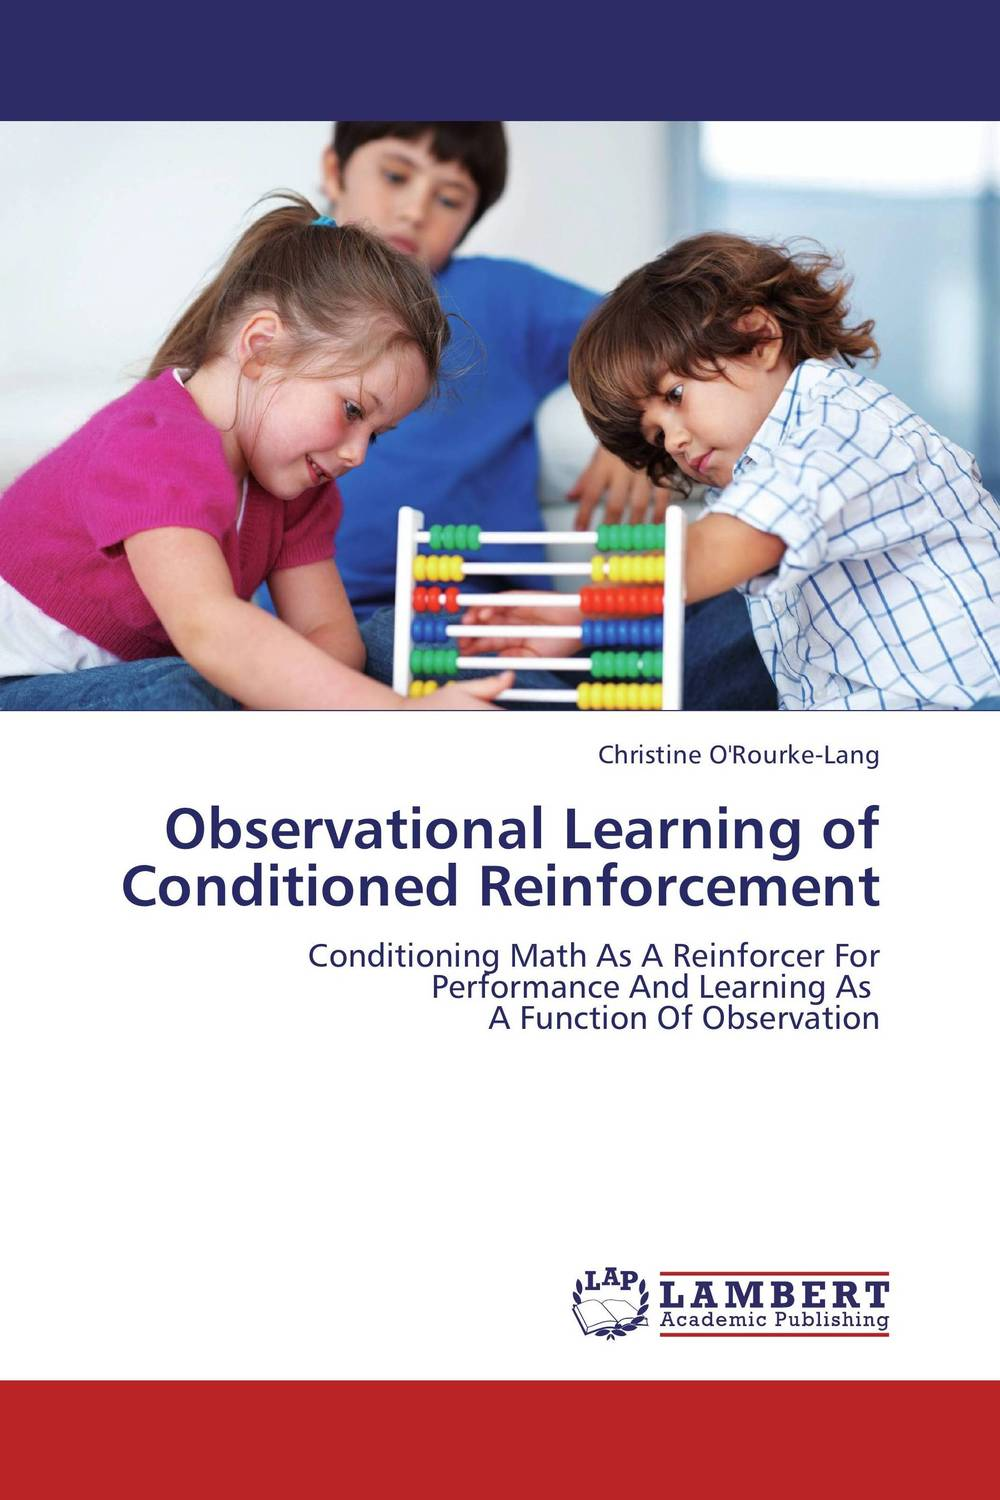 Observational Learning of Conditioned Reinforcement johns hopkins – knowledge for the world